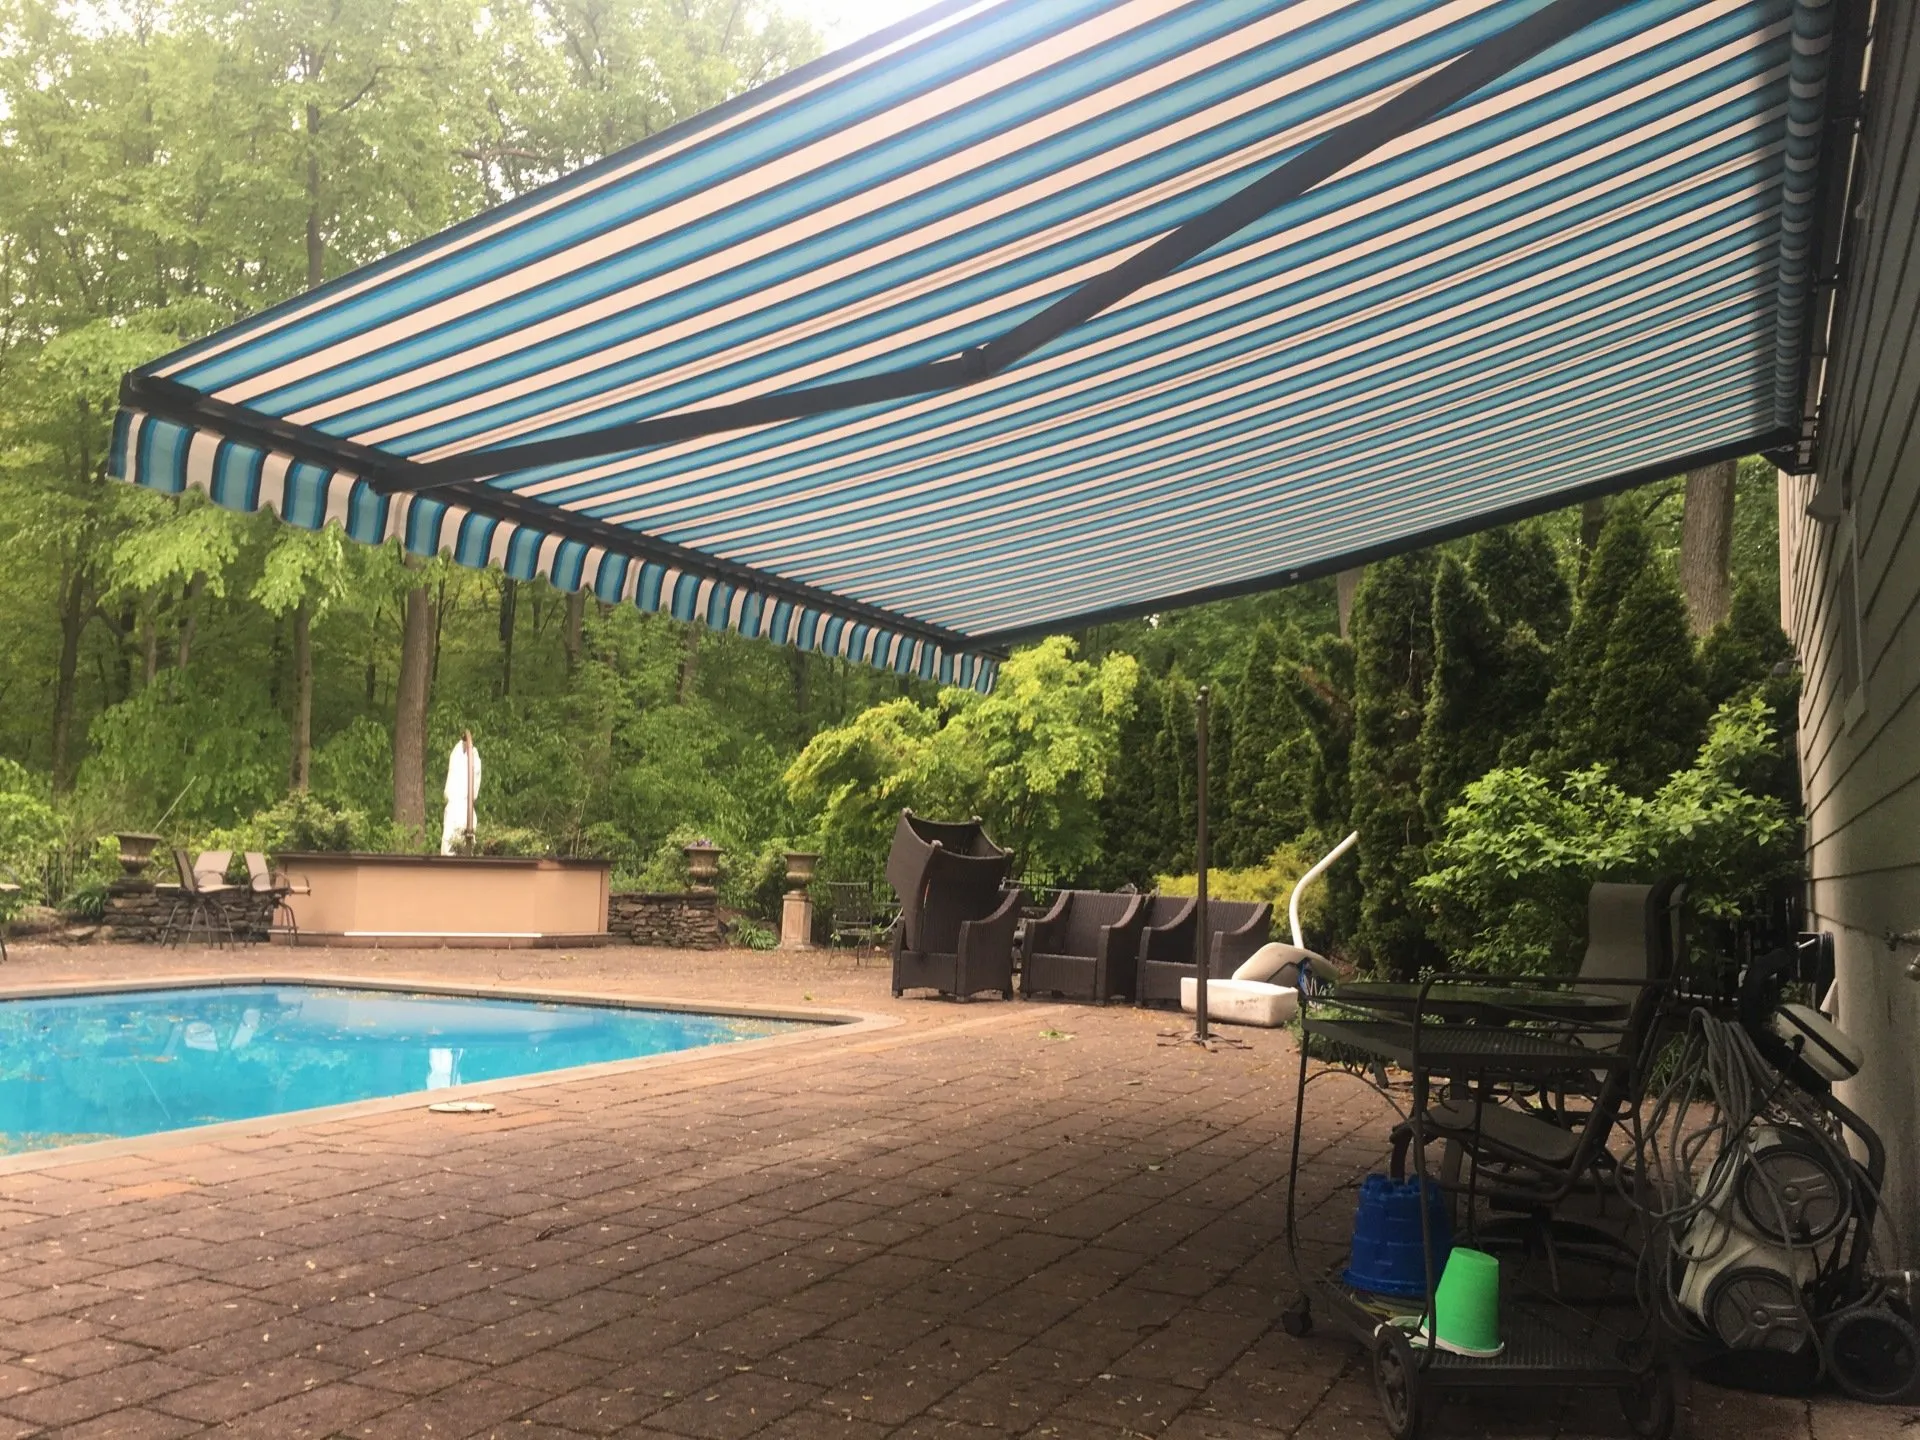 Retractable Awning For Deck or Patio   Ramsey Nj